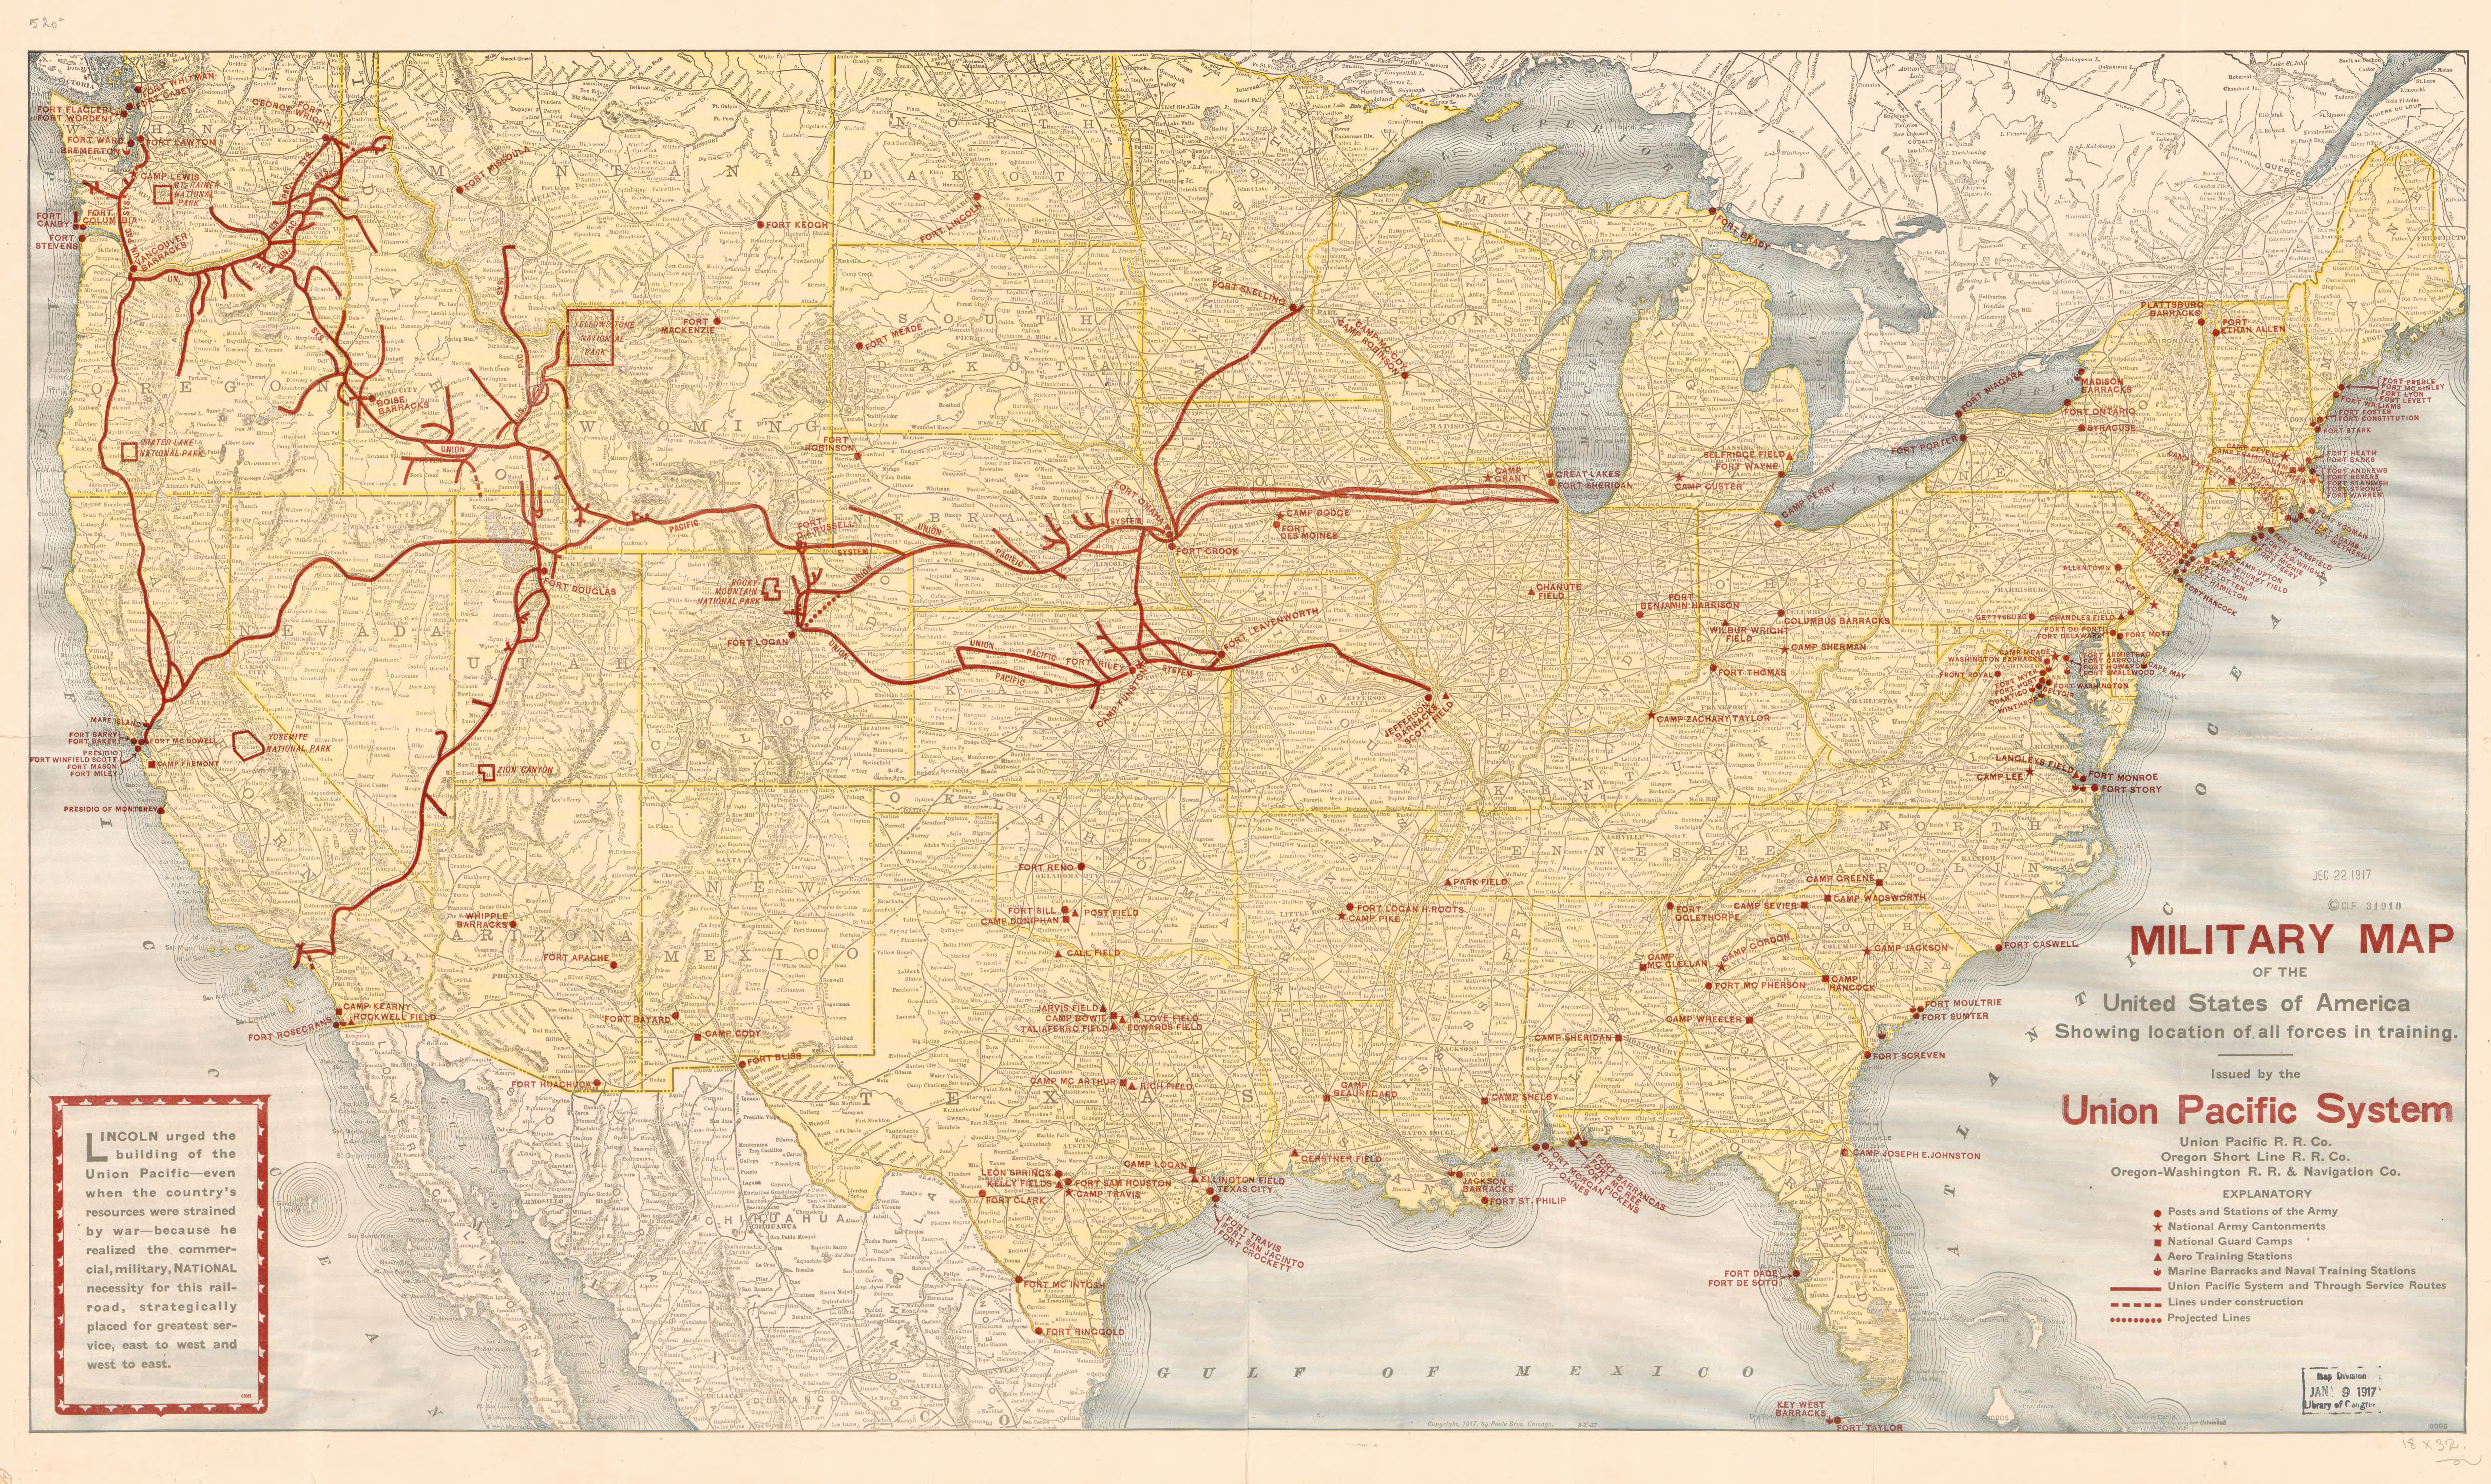 File:Military map of the United States of America - showing ...